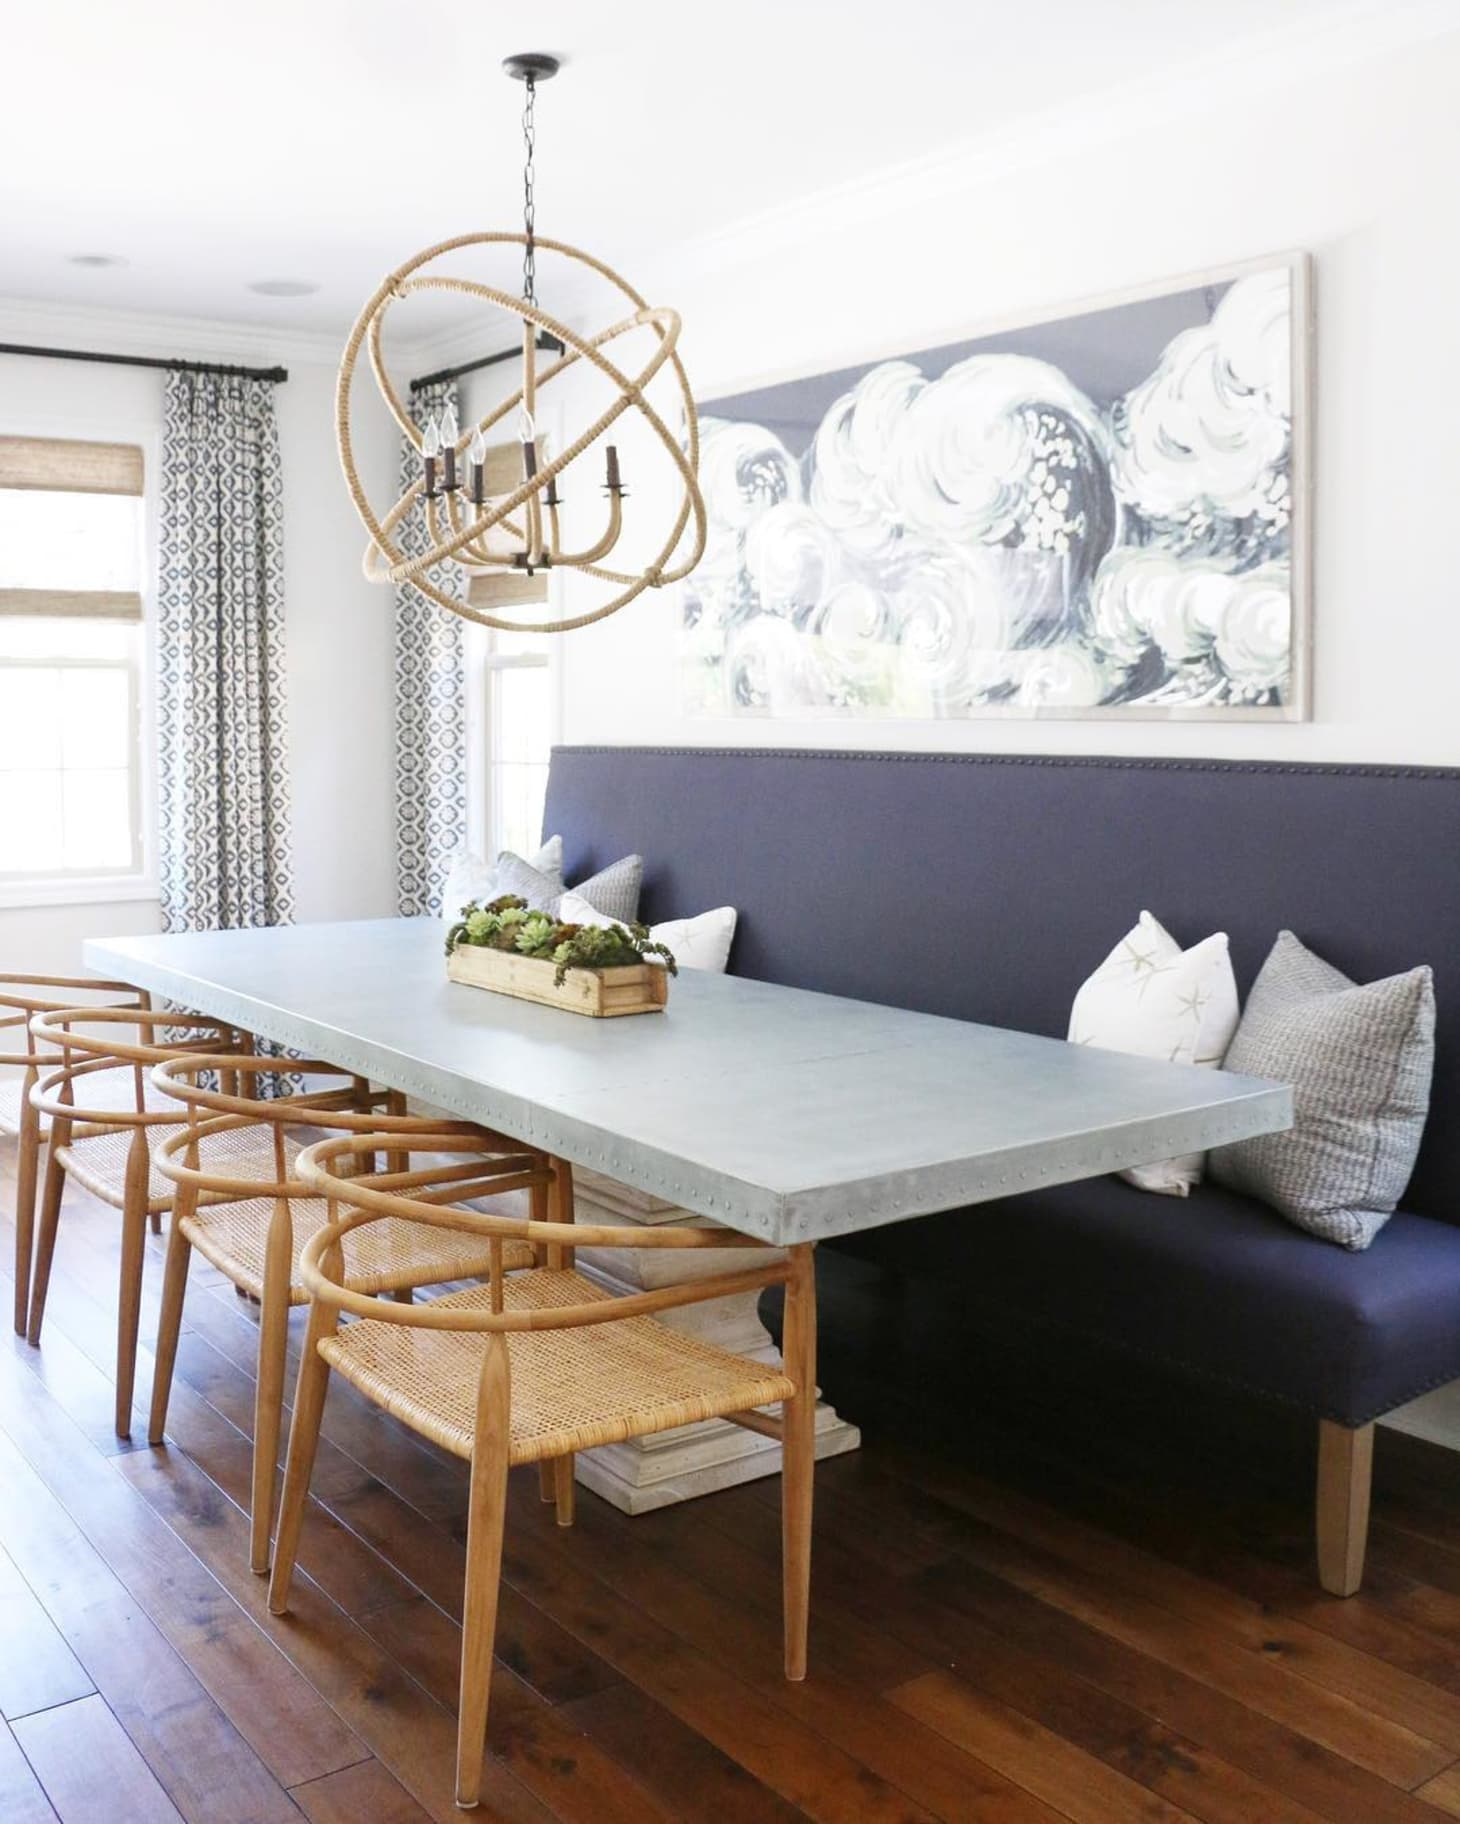 Dining Room Ideas: Try A Banquette In Place Of Chairs For